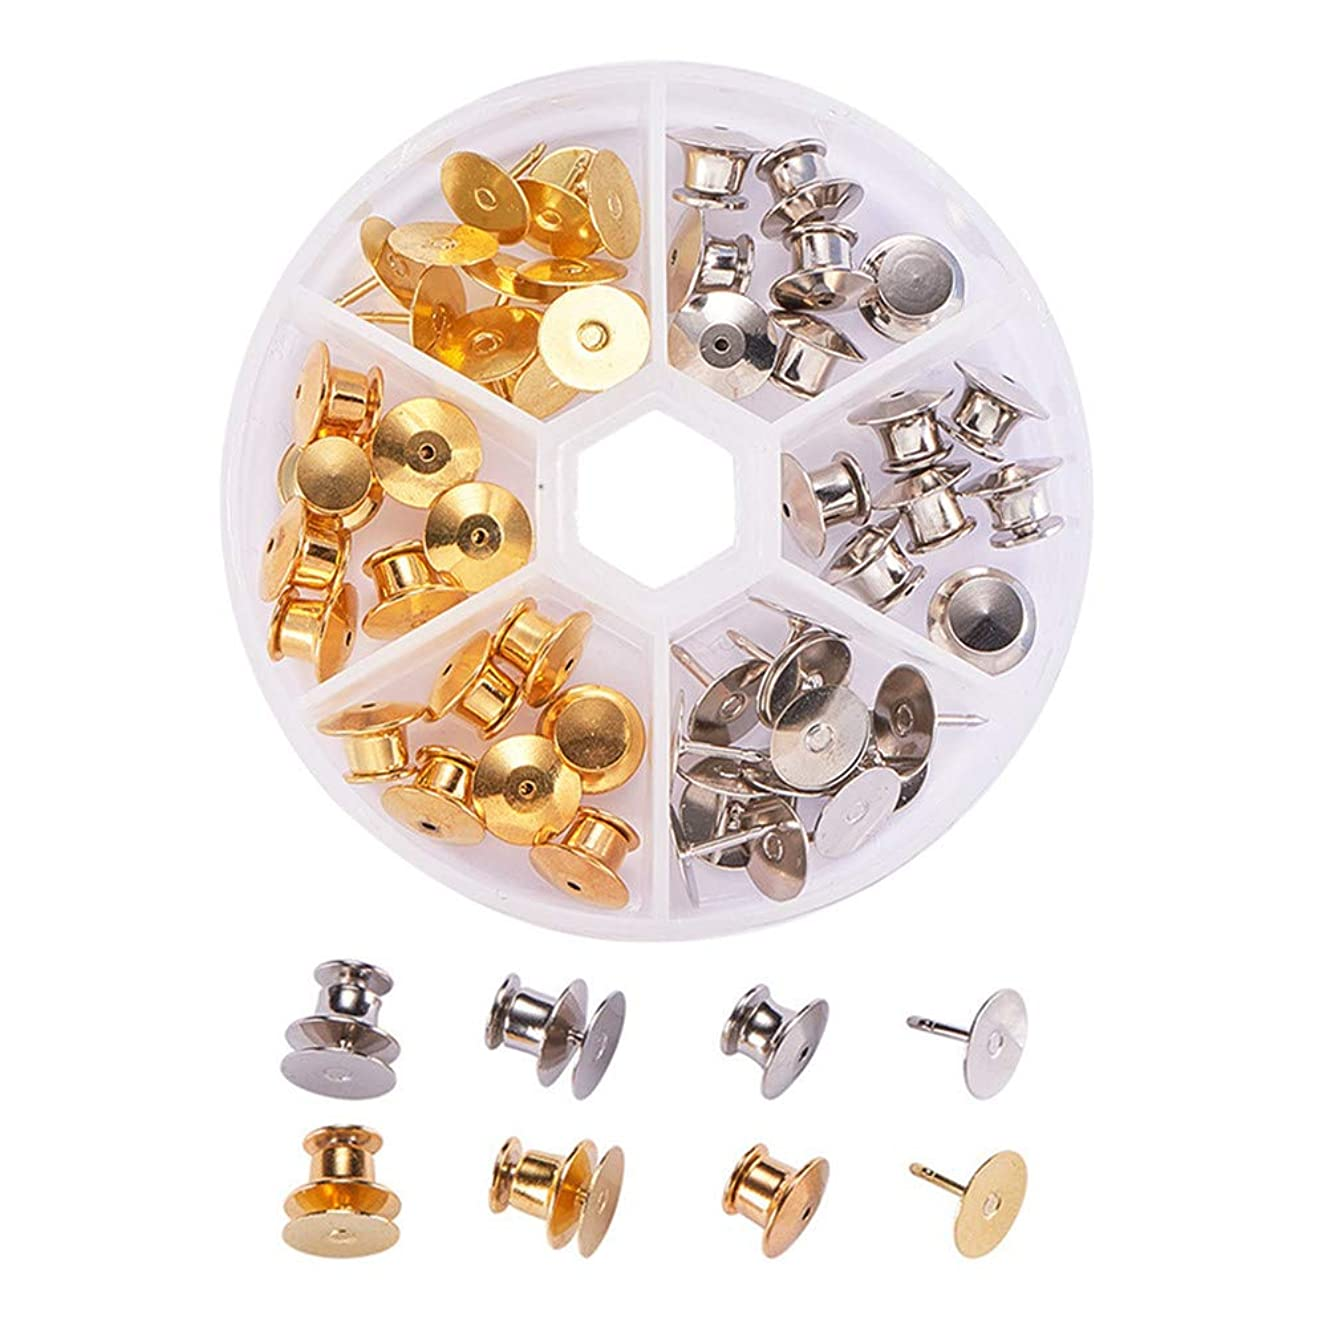 BENECREAT 60 Count Gold & Platinum Colors Clutch Pin Backs with Tie Tacks Blank Pins Kit, Locking Bulk Metal Pin Keepers Locking Clasp with Storage Case